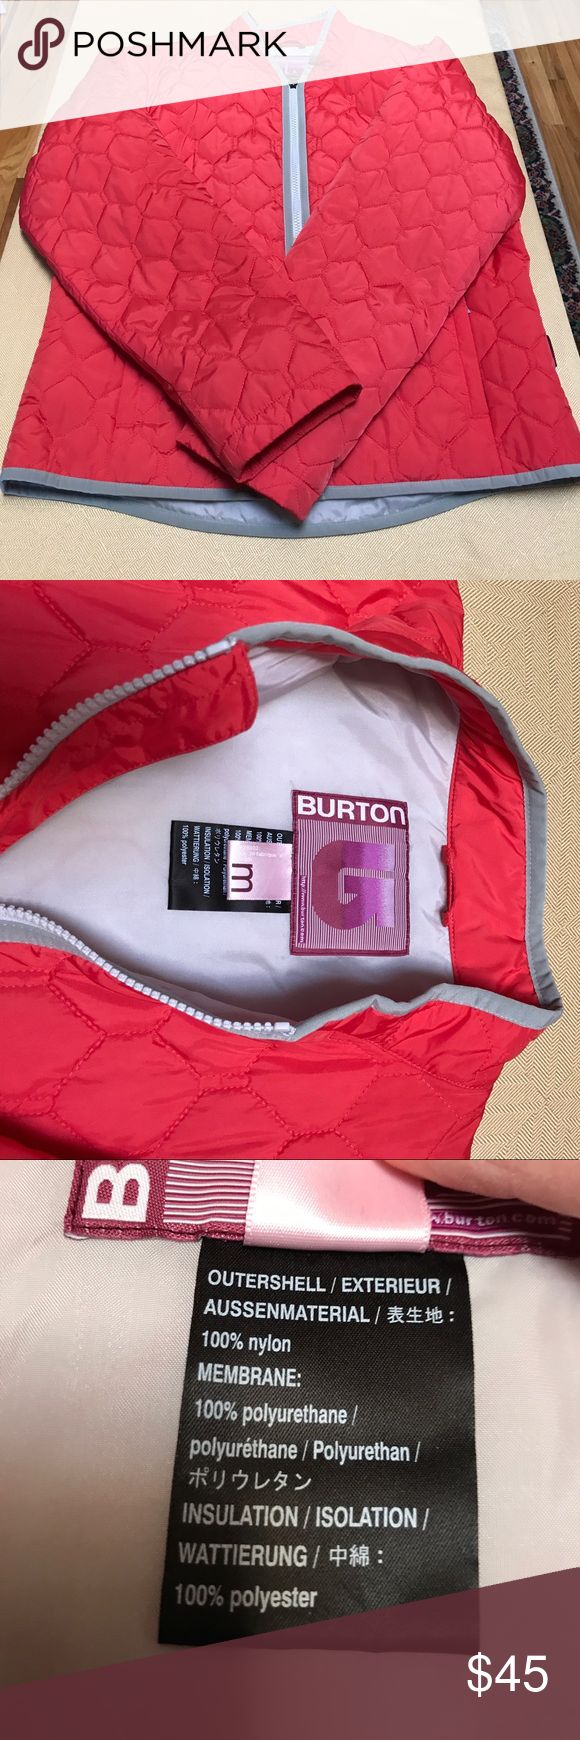 Adorable Burton jacket This Burton jacket is super cute! The color is a red poppy color with grey accents. The outside is textured kind of like a puffer jacket, but this jacket is fairly lightweight.  Jacket hits at the low waist. Barely worn - like new condition. Willing to entertain offers. Burton Jackets & Coats